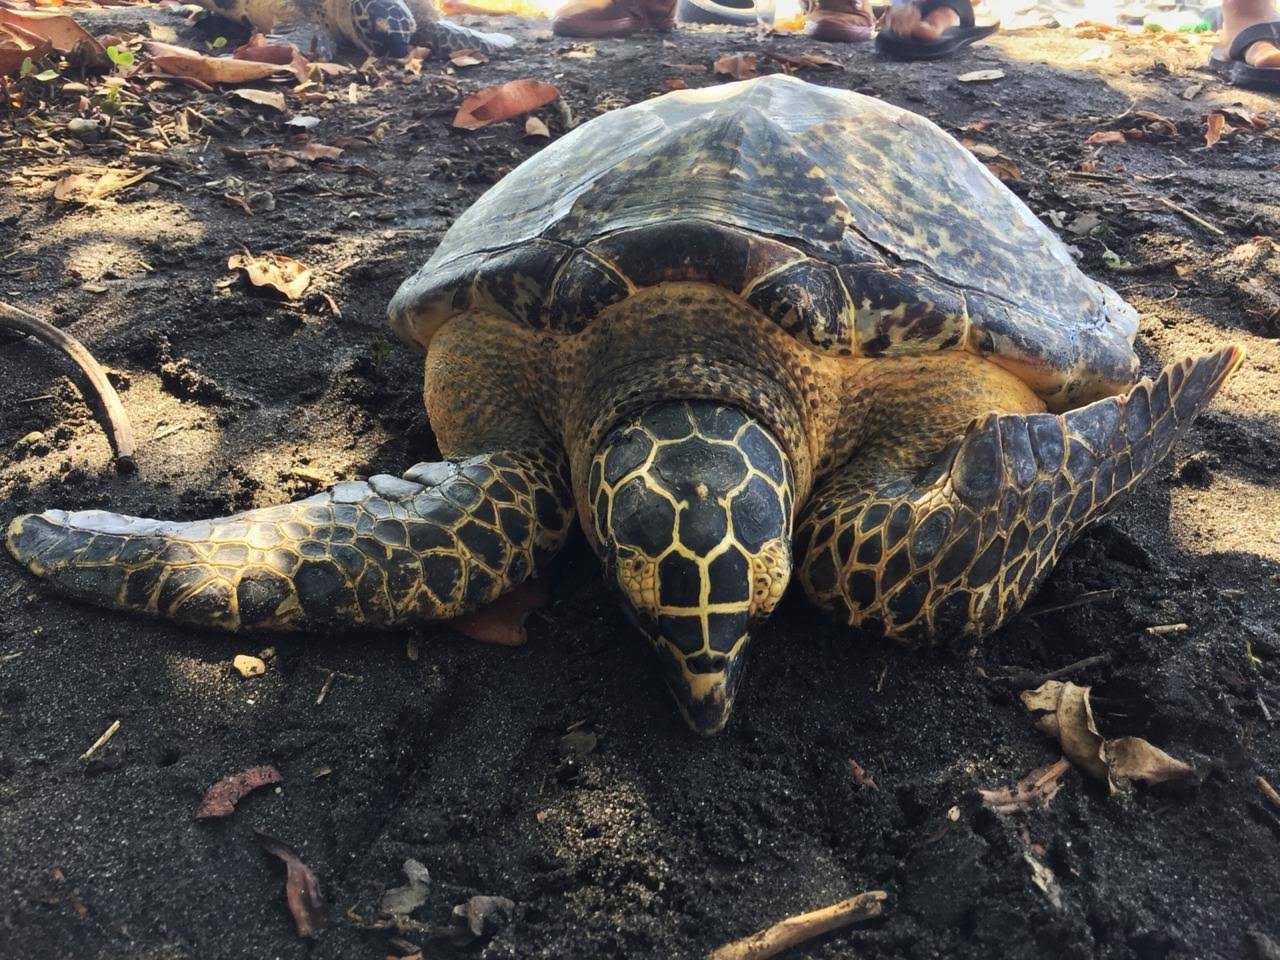 Release of the critically endangered red list species; the Hawksbill Sea Turtle (Eretmochelys imbricata)